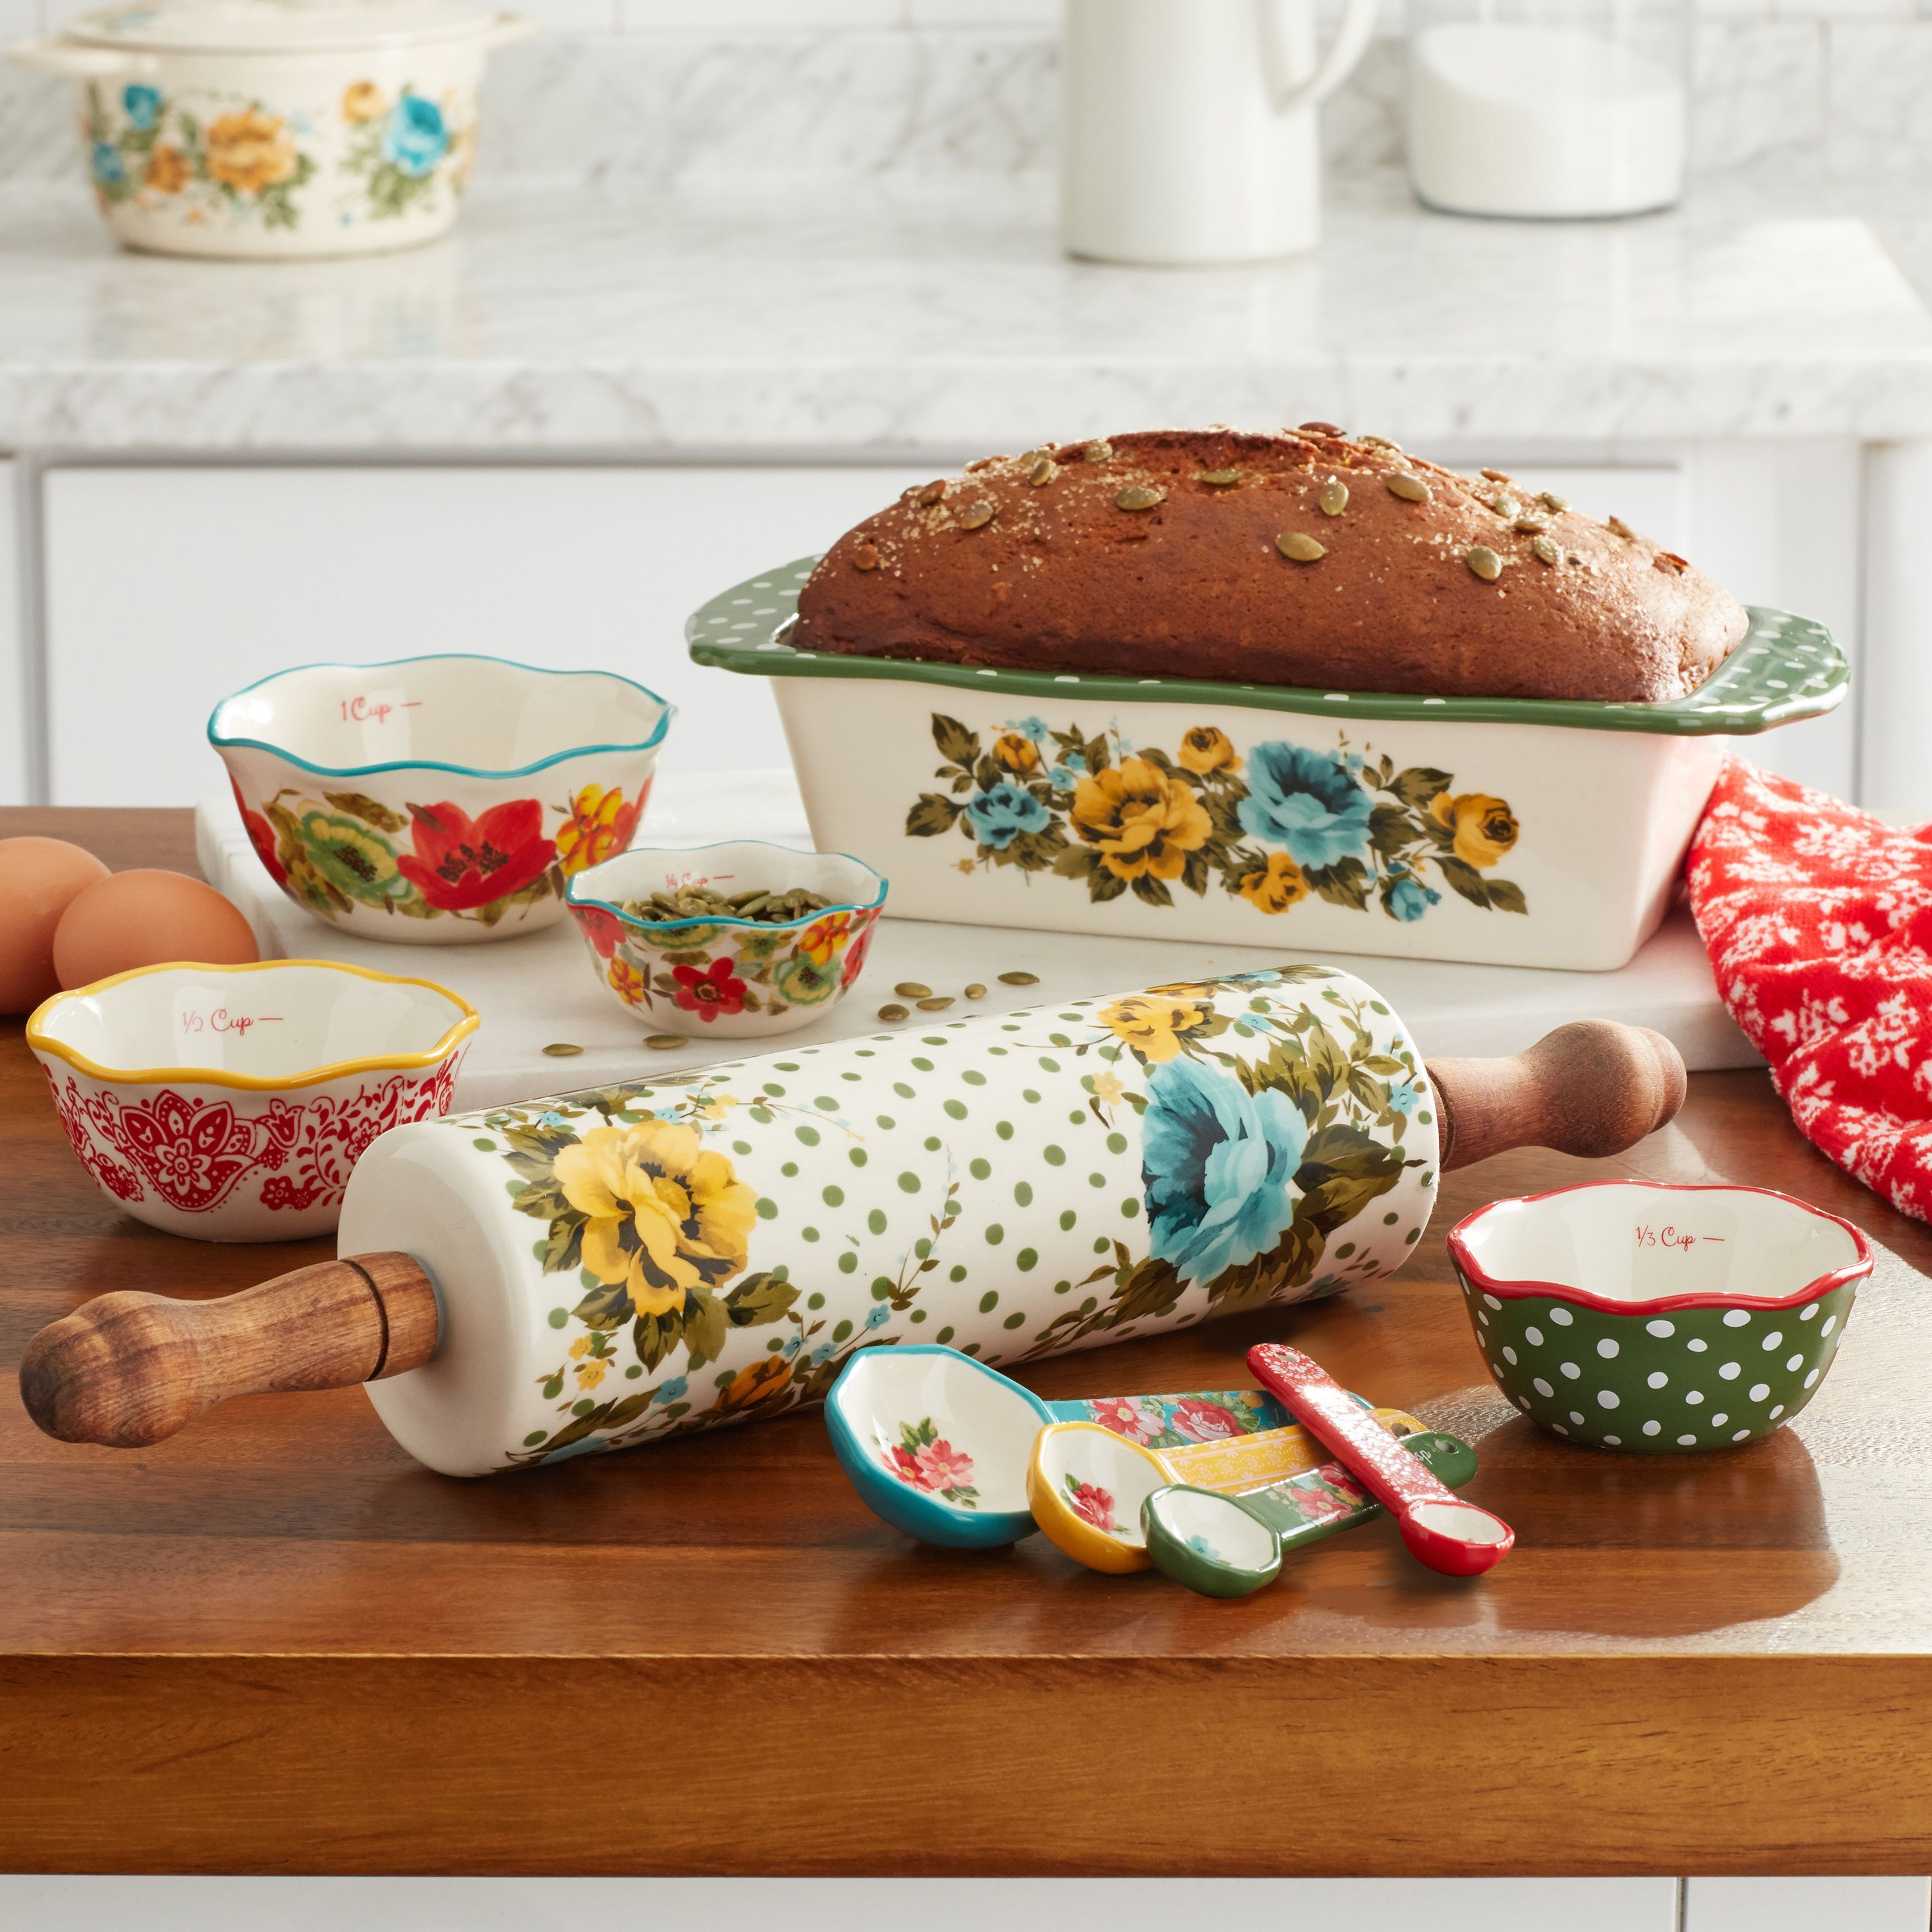 The Pioneer Woman Bakeware Combo Set At Walmart Where To Buy The Pioneer Woman Bakeware Set